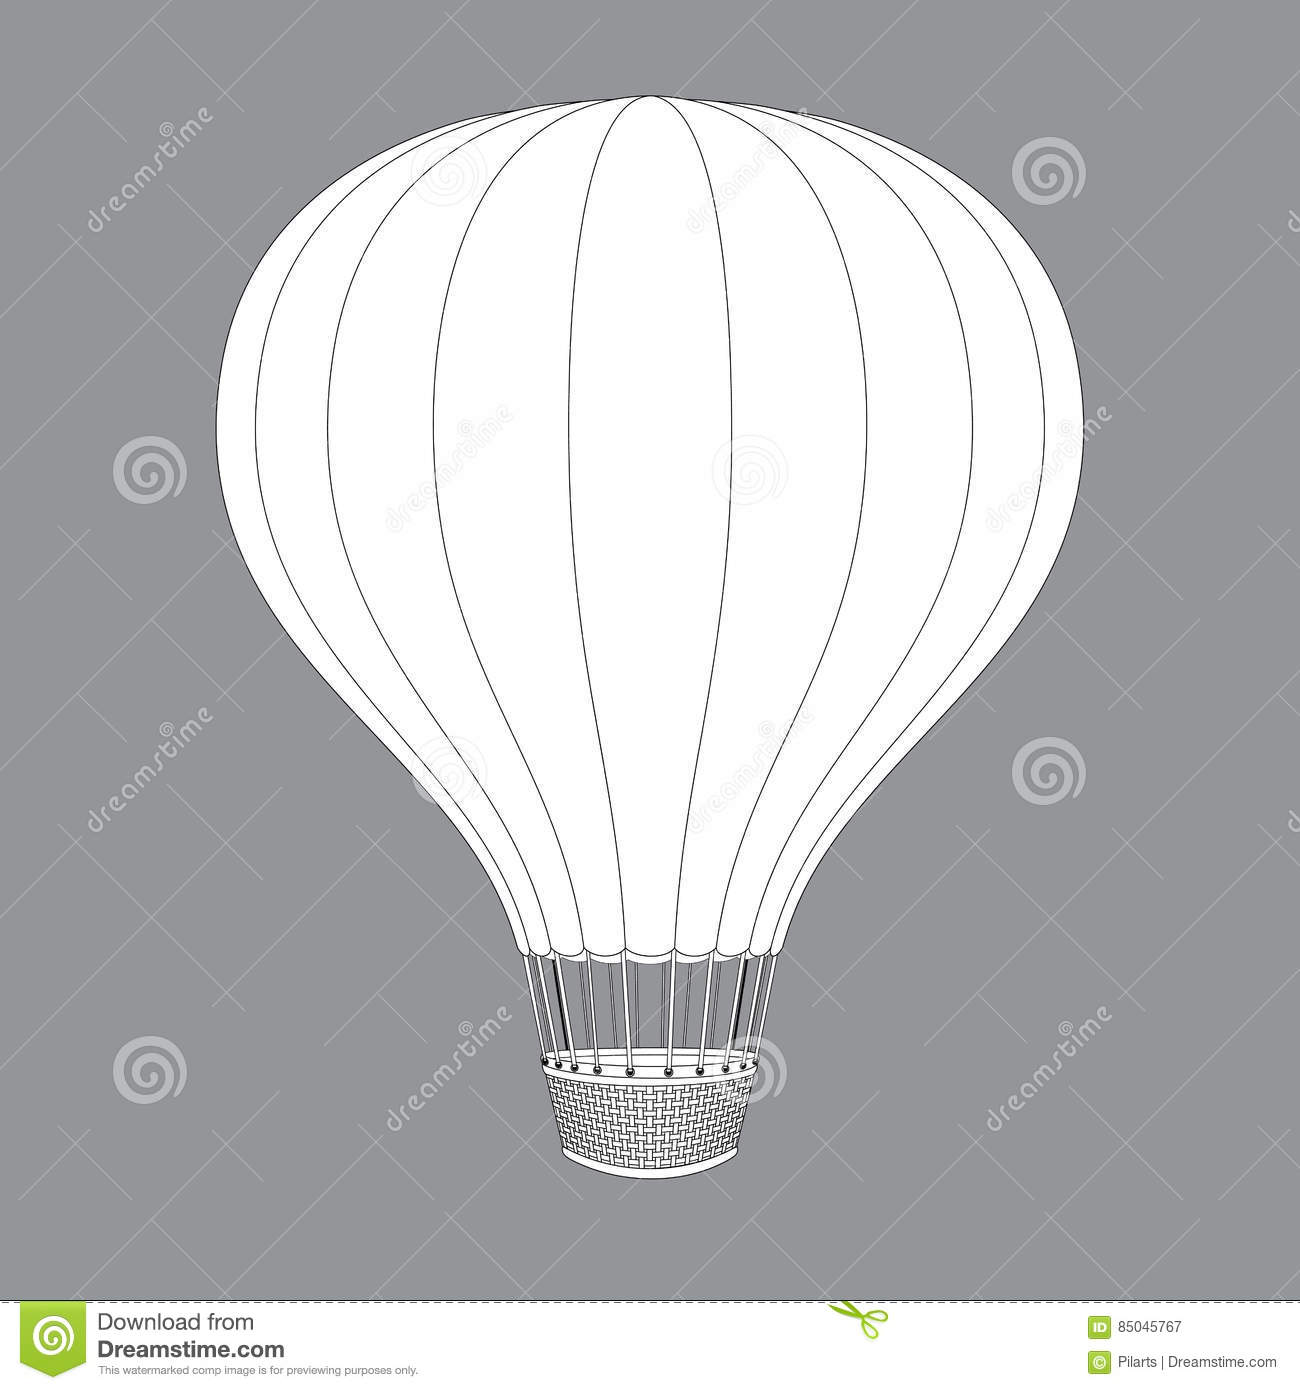 Hot Air Balloon. Contour Drawings For Color Design Stock Image ...